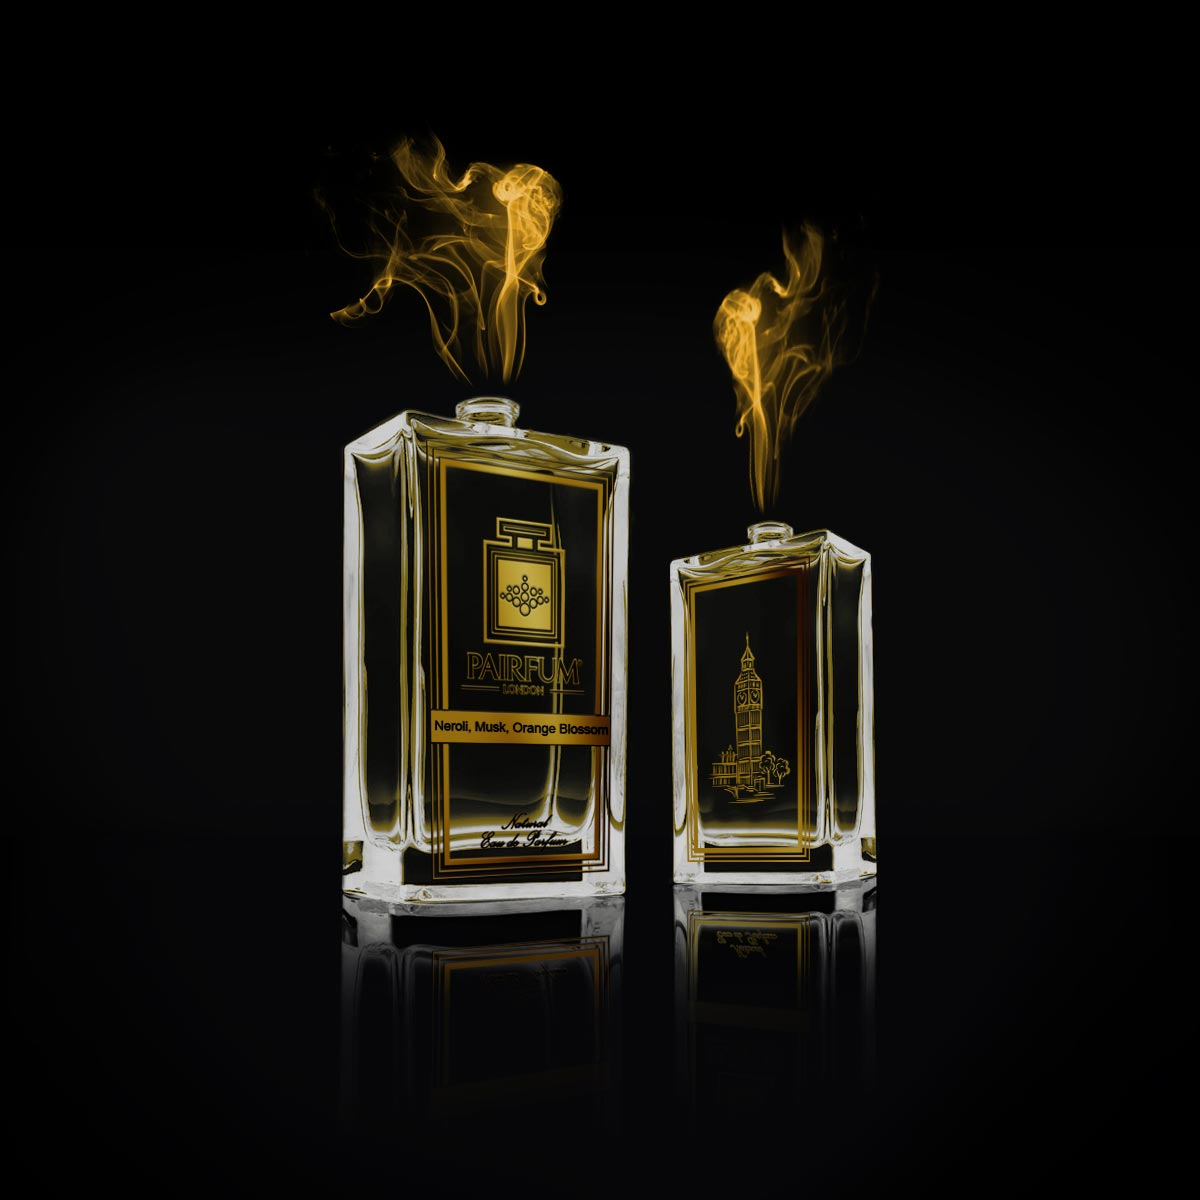 Pairfum Natural Artisan Eau De Parfum Intense Gold Flair